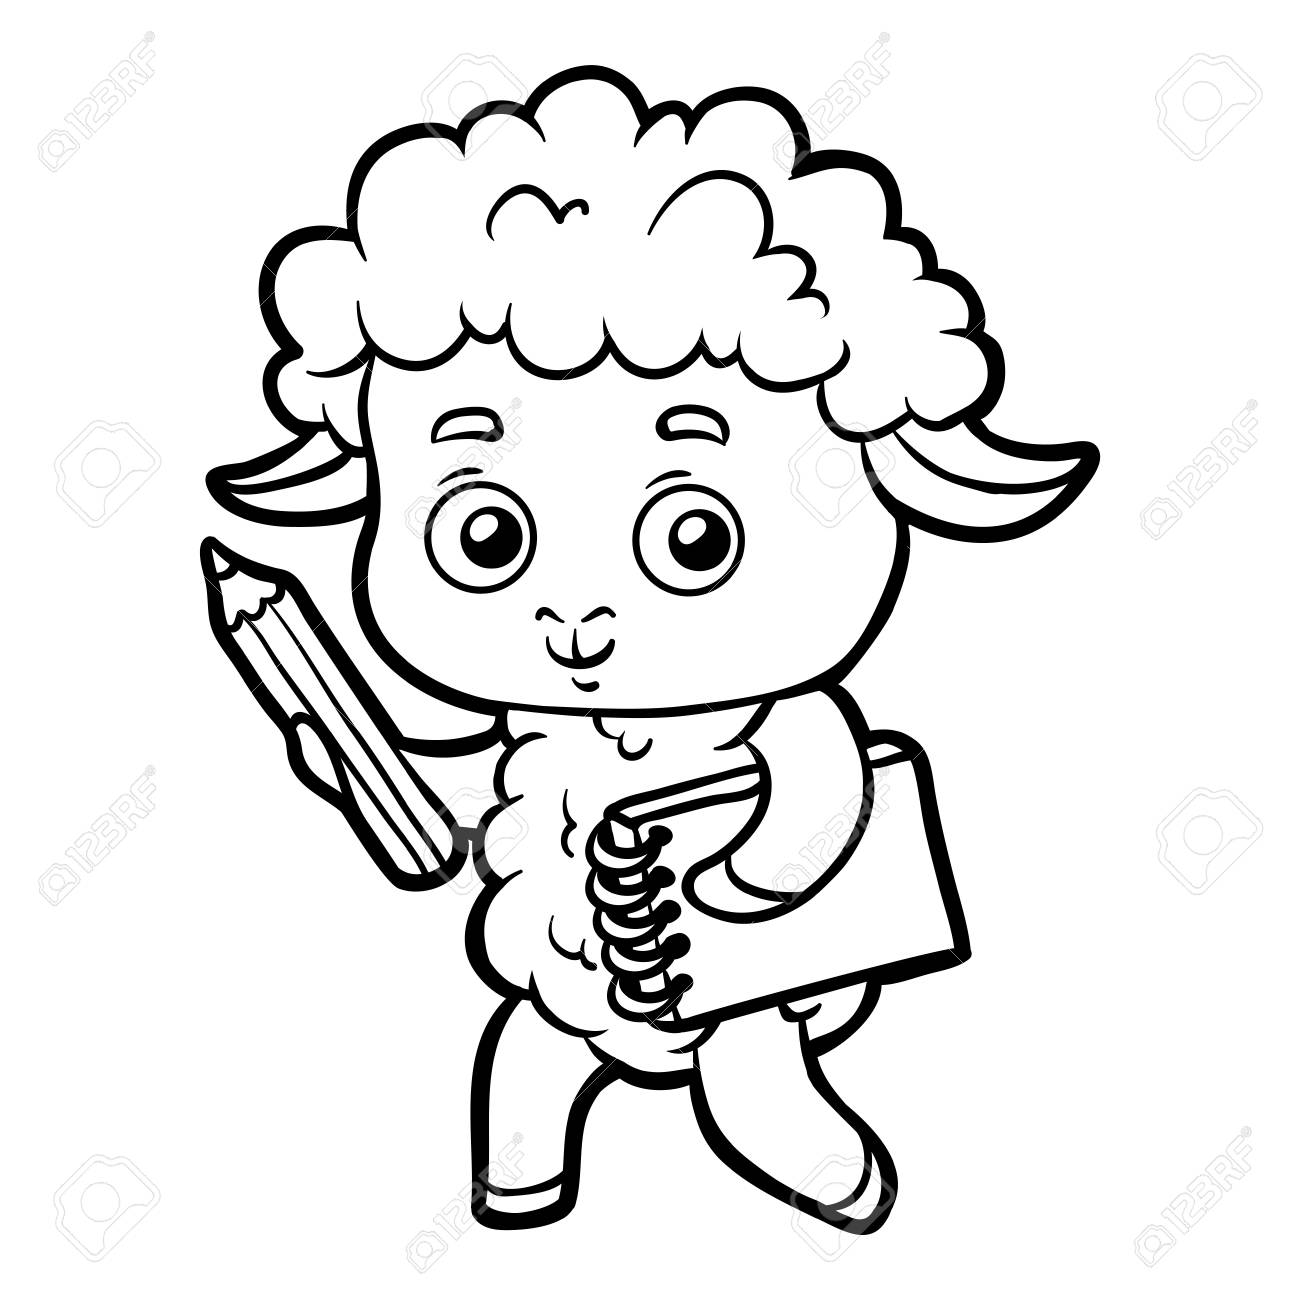 Coloring book for children, Sheep writer with a pencil and a..